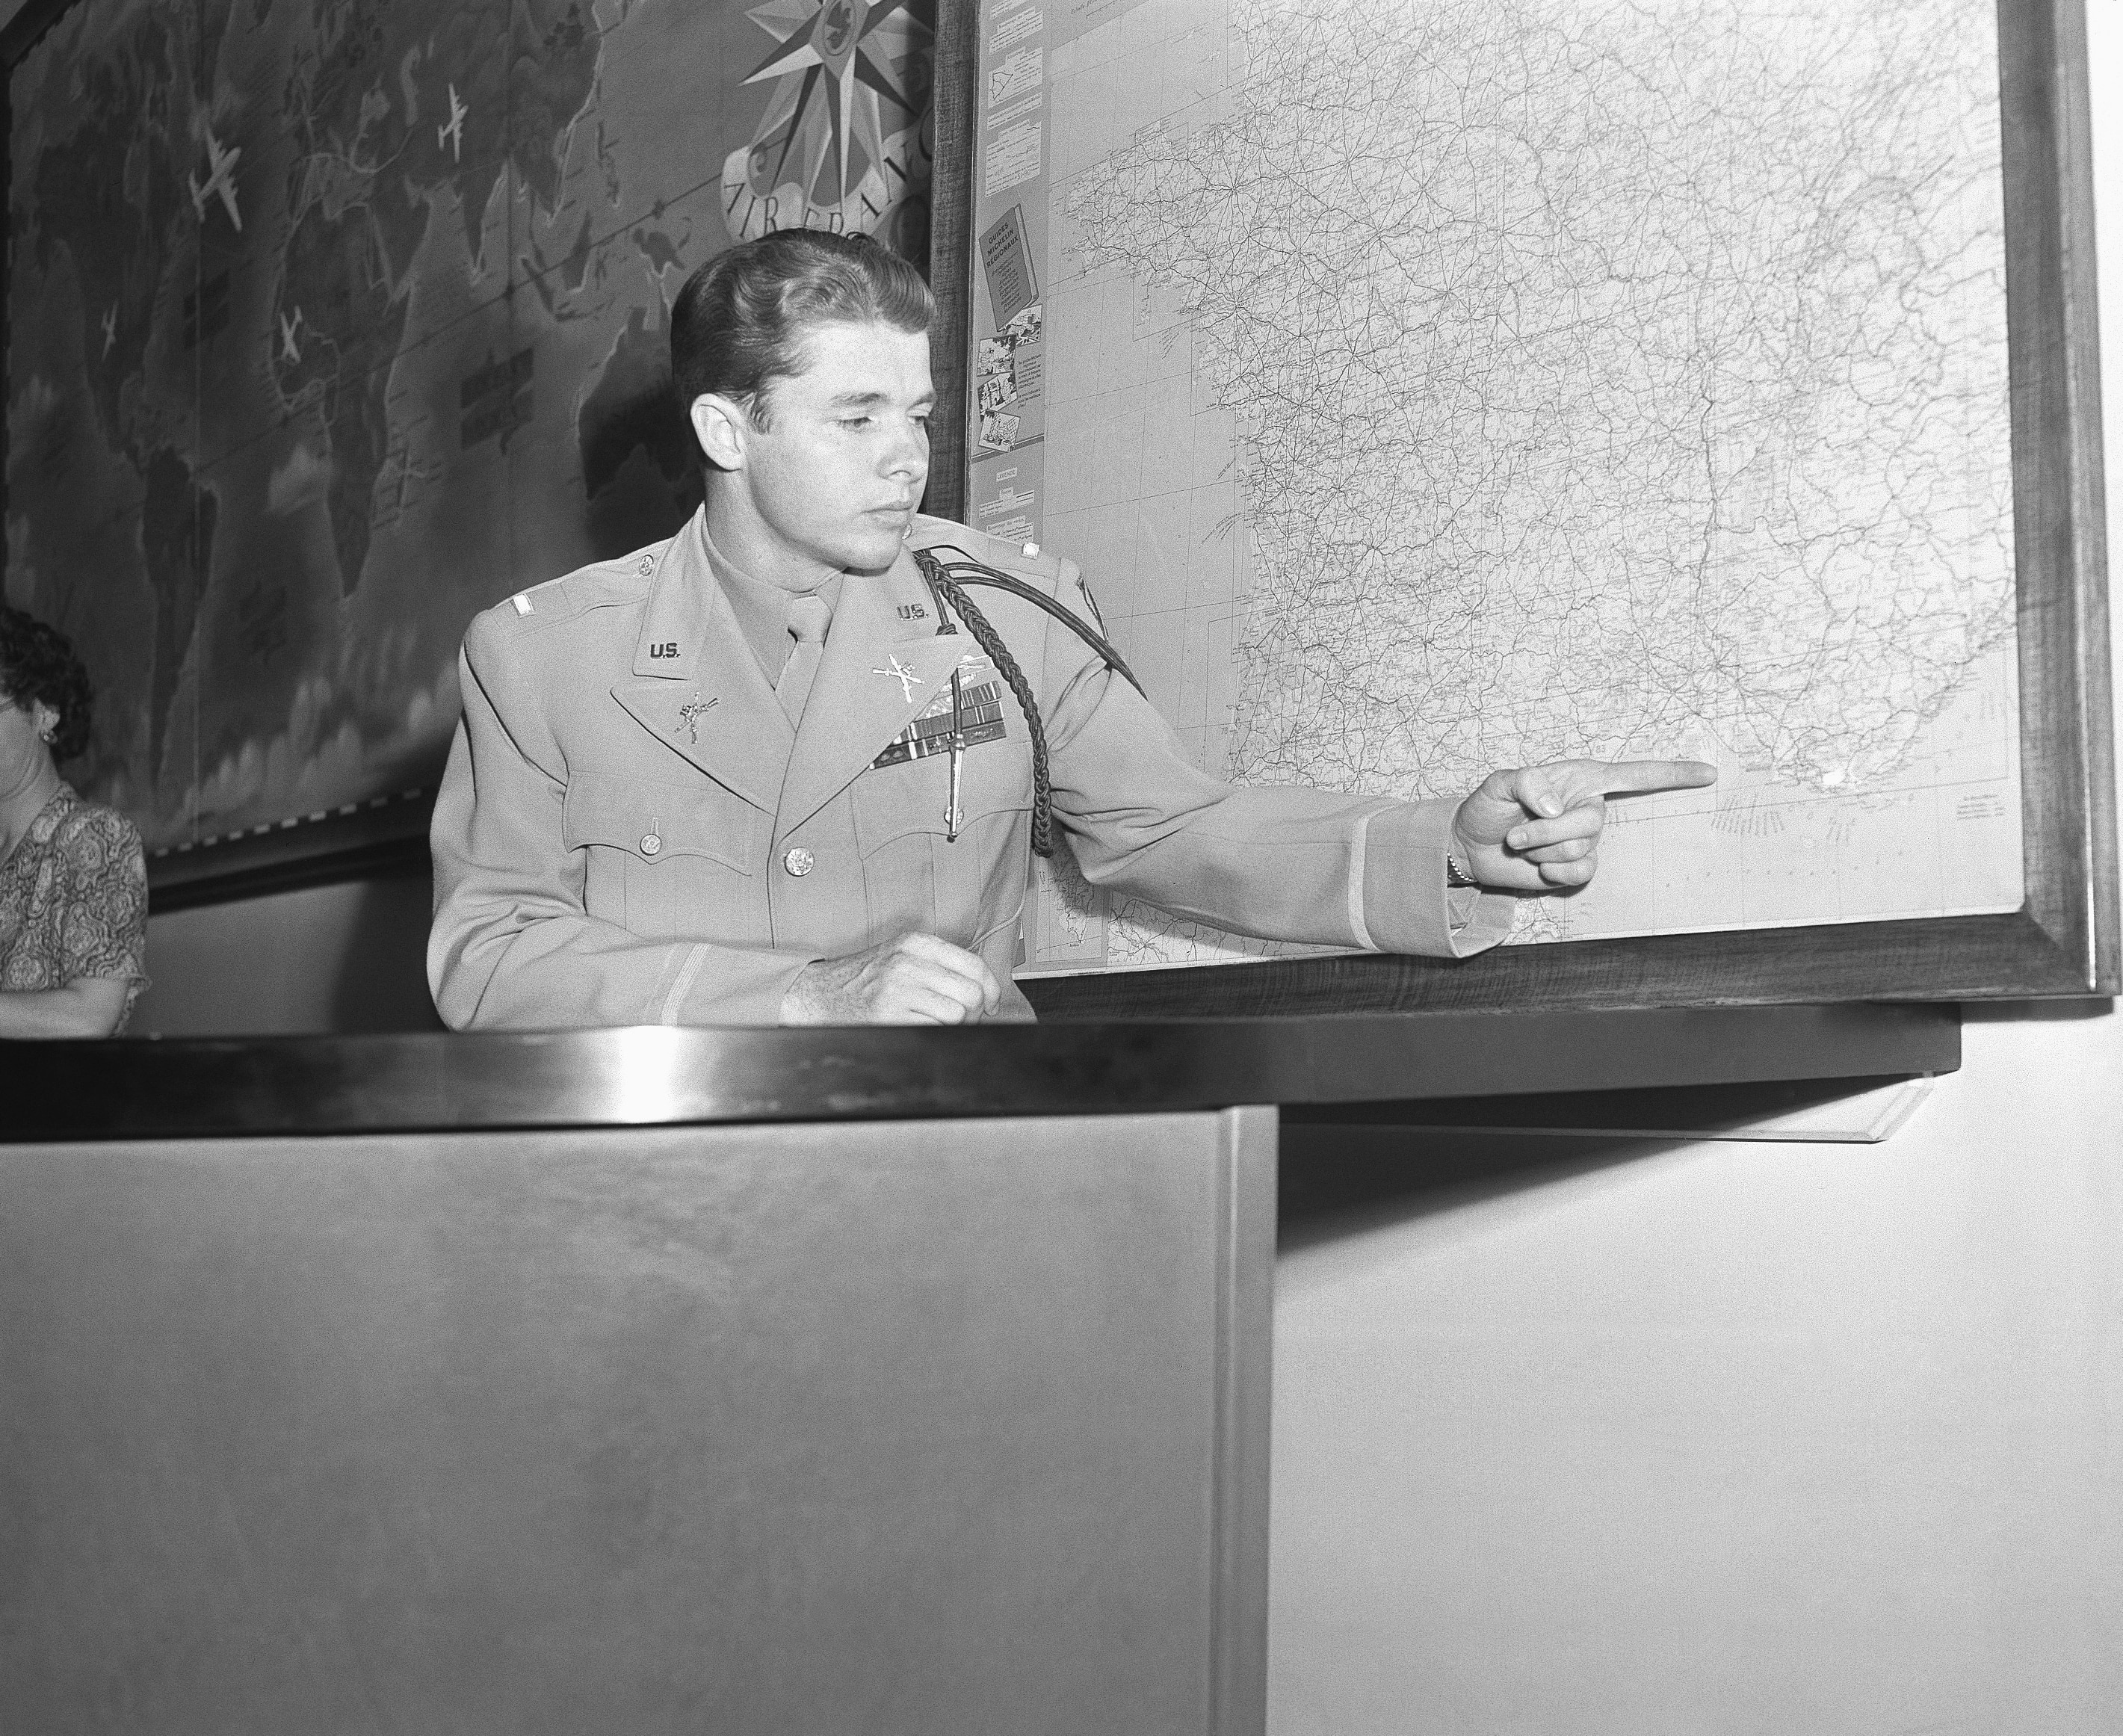 Today in history: Audie Murphy makes a one-man stand against German tanks, infantry in 1945